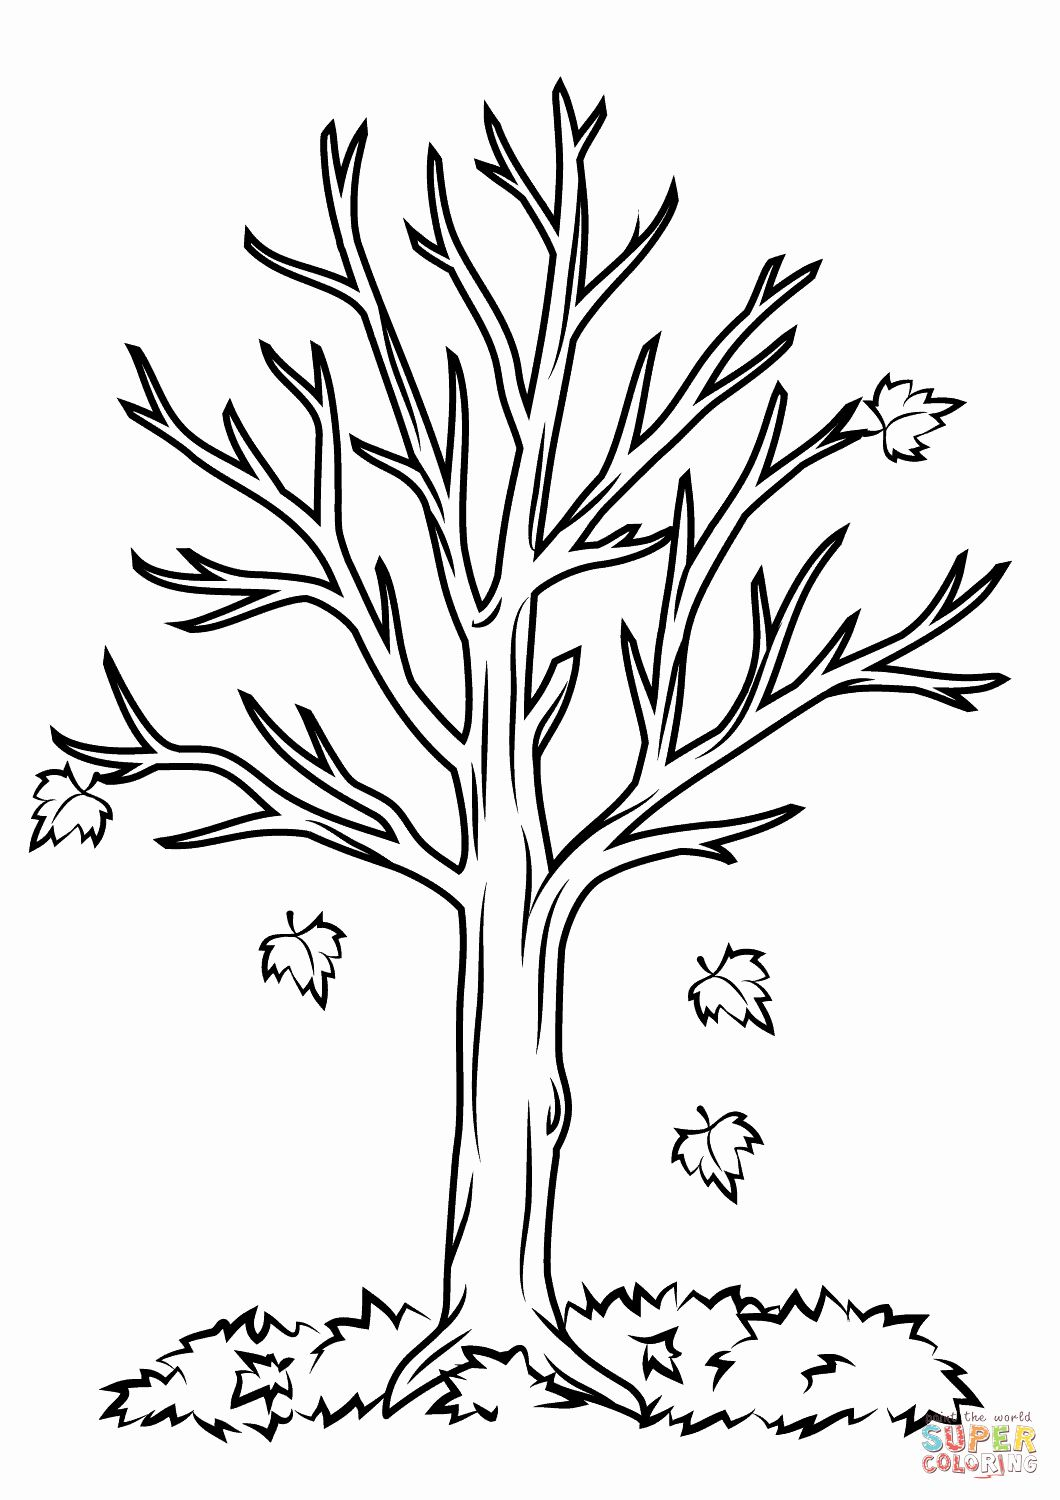 Fall Tree Coloring Page Awesome Fall Tree Coloring Page In 2020 Tree Coloring Page Fall Coloring Pages Leaf Coloring Page